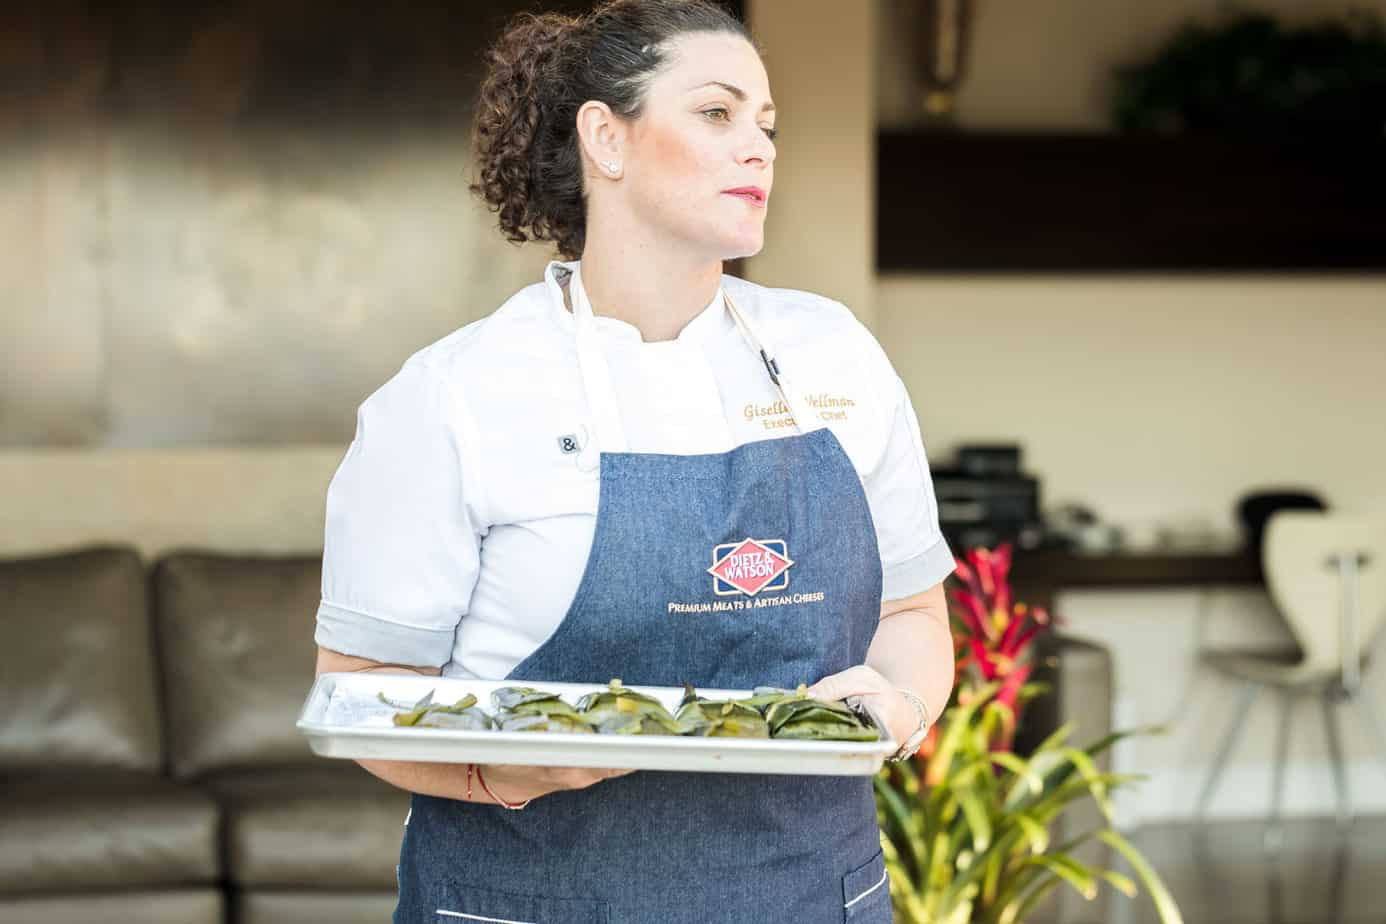 Join #ChooseTheTable with Dietz & Watson and Chef Giselle Wellman